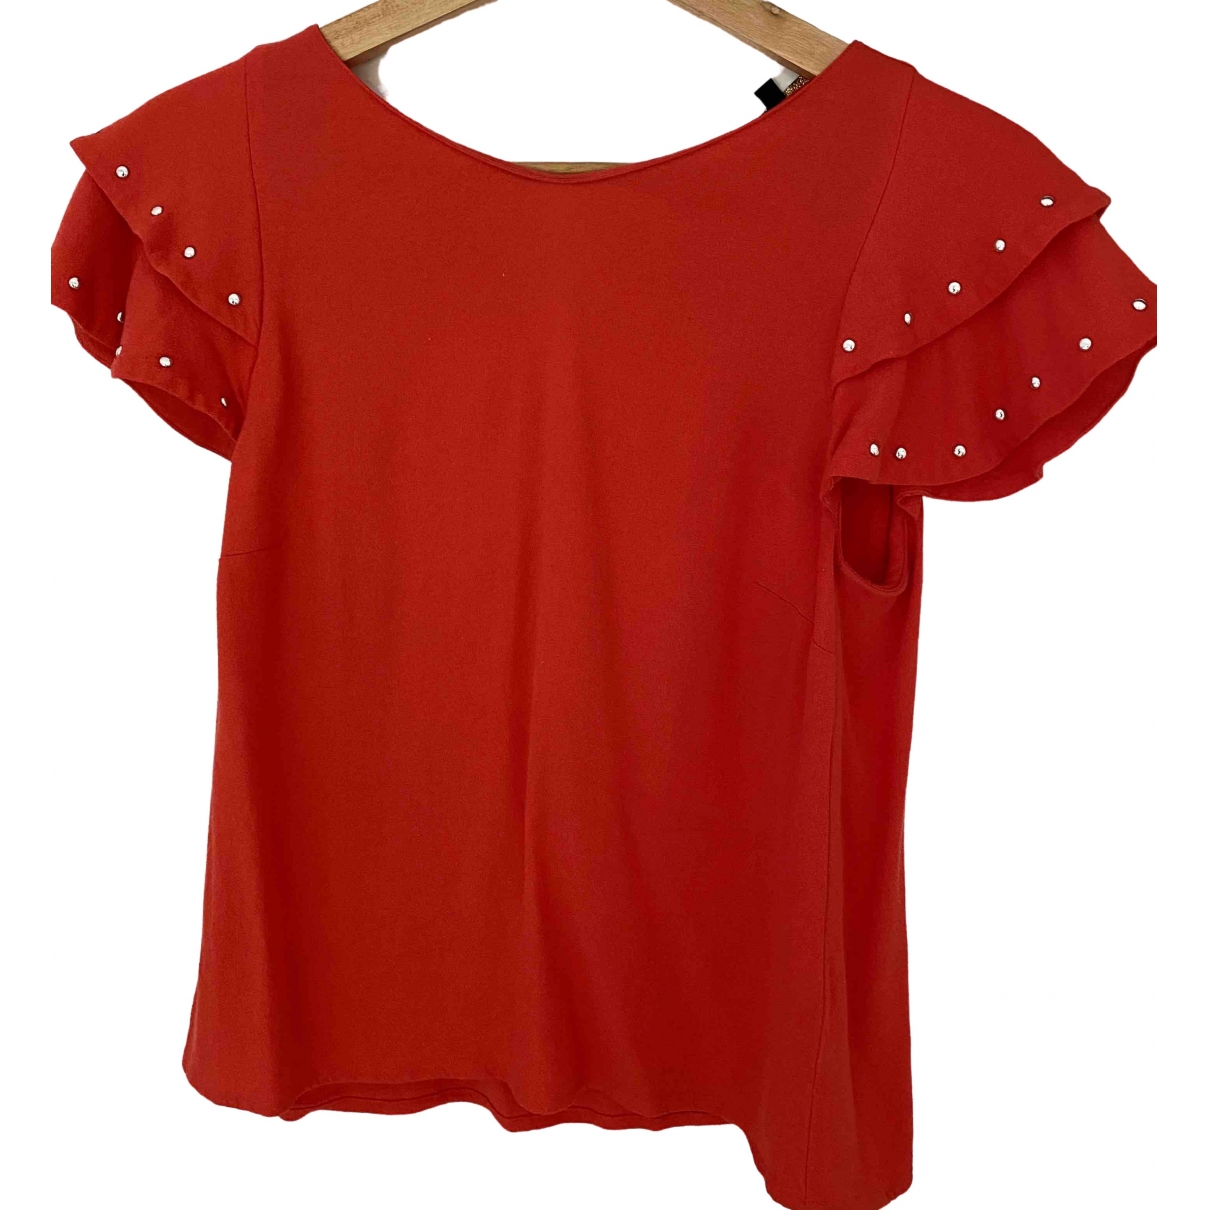 Maje \N Orange  top for Women 36 FR